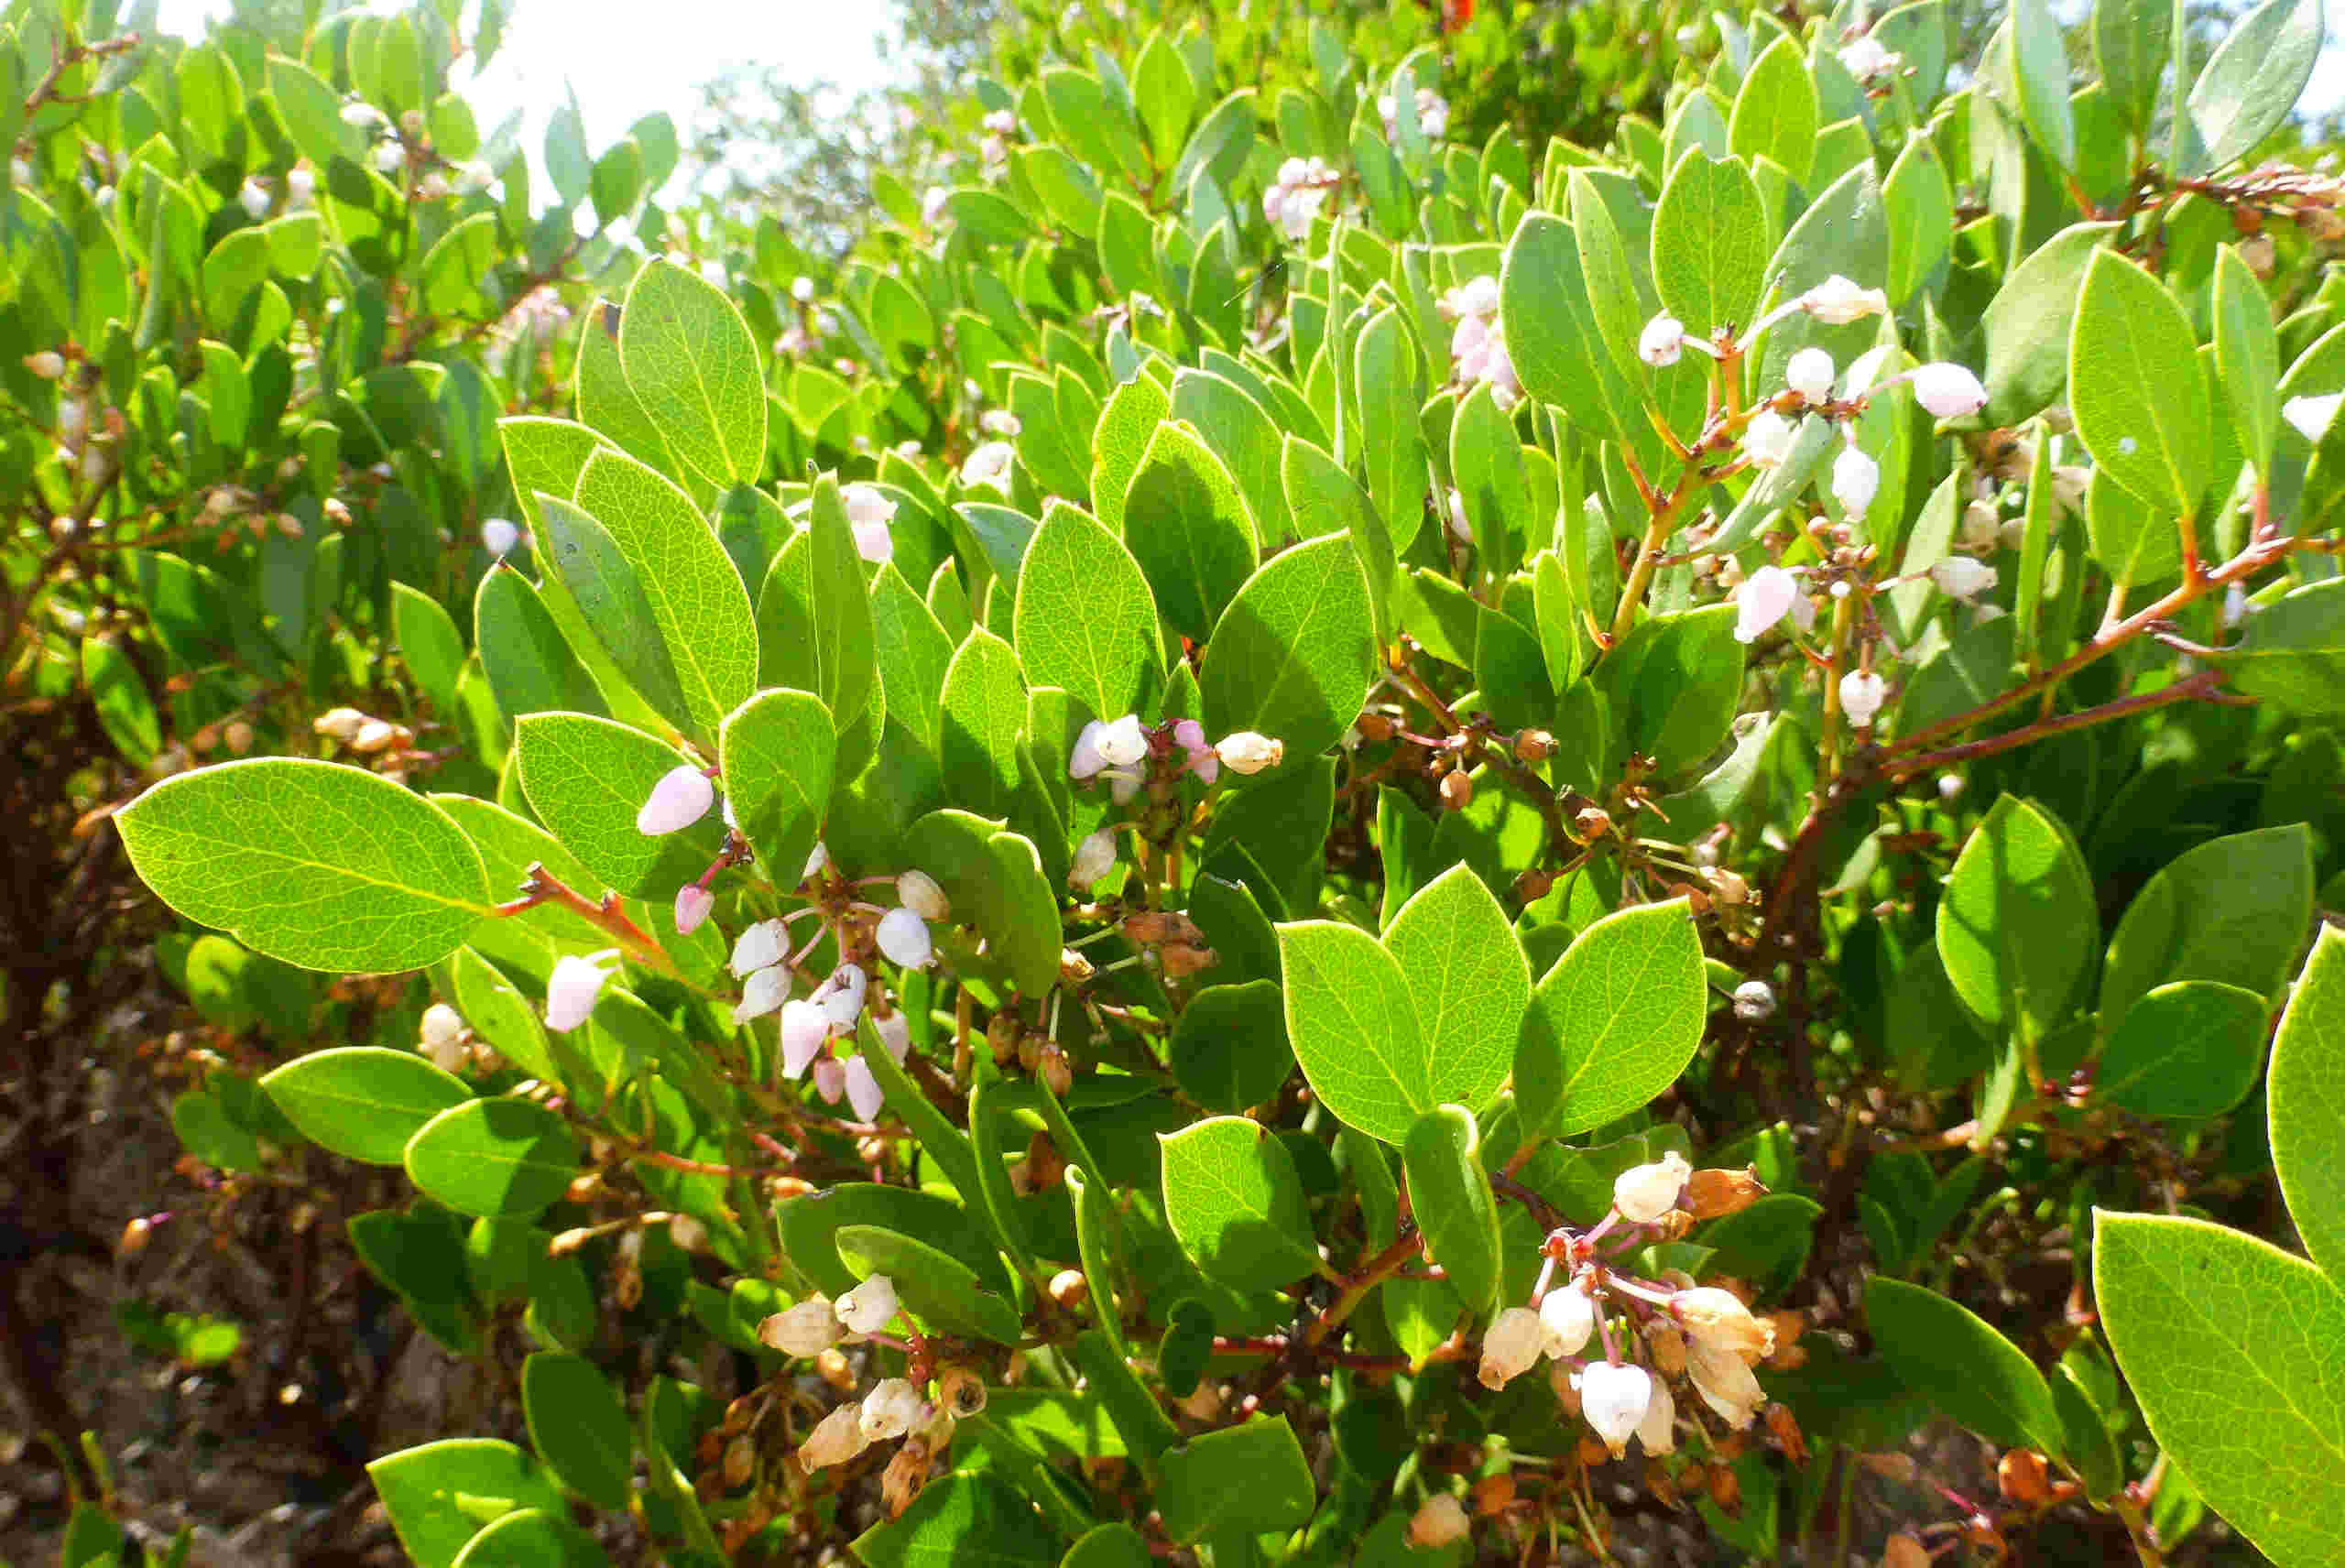 Manzanita flowers - some are turning brown